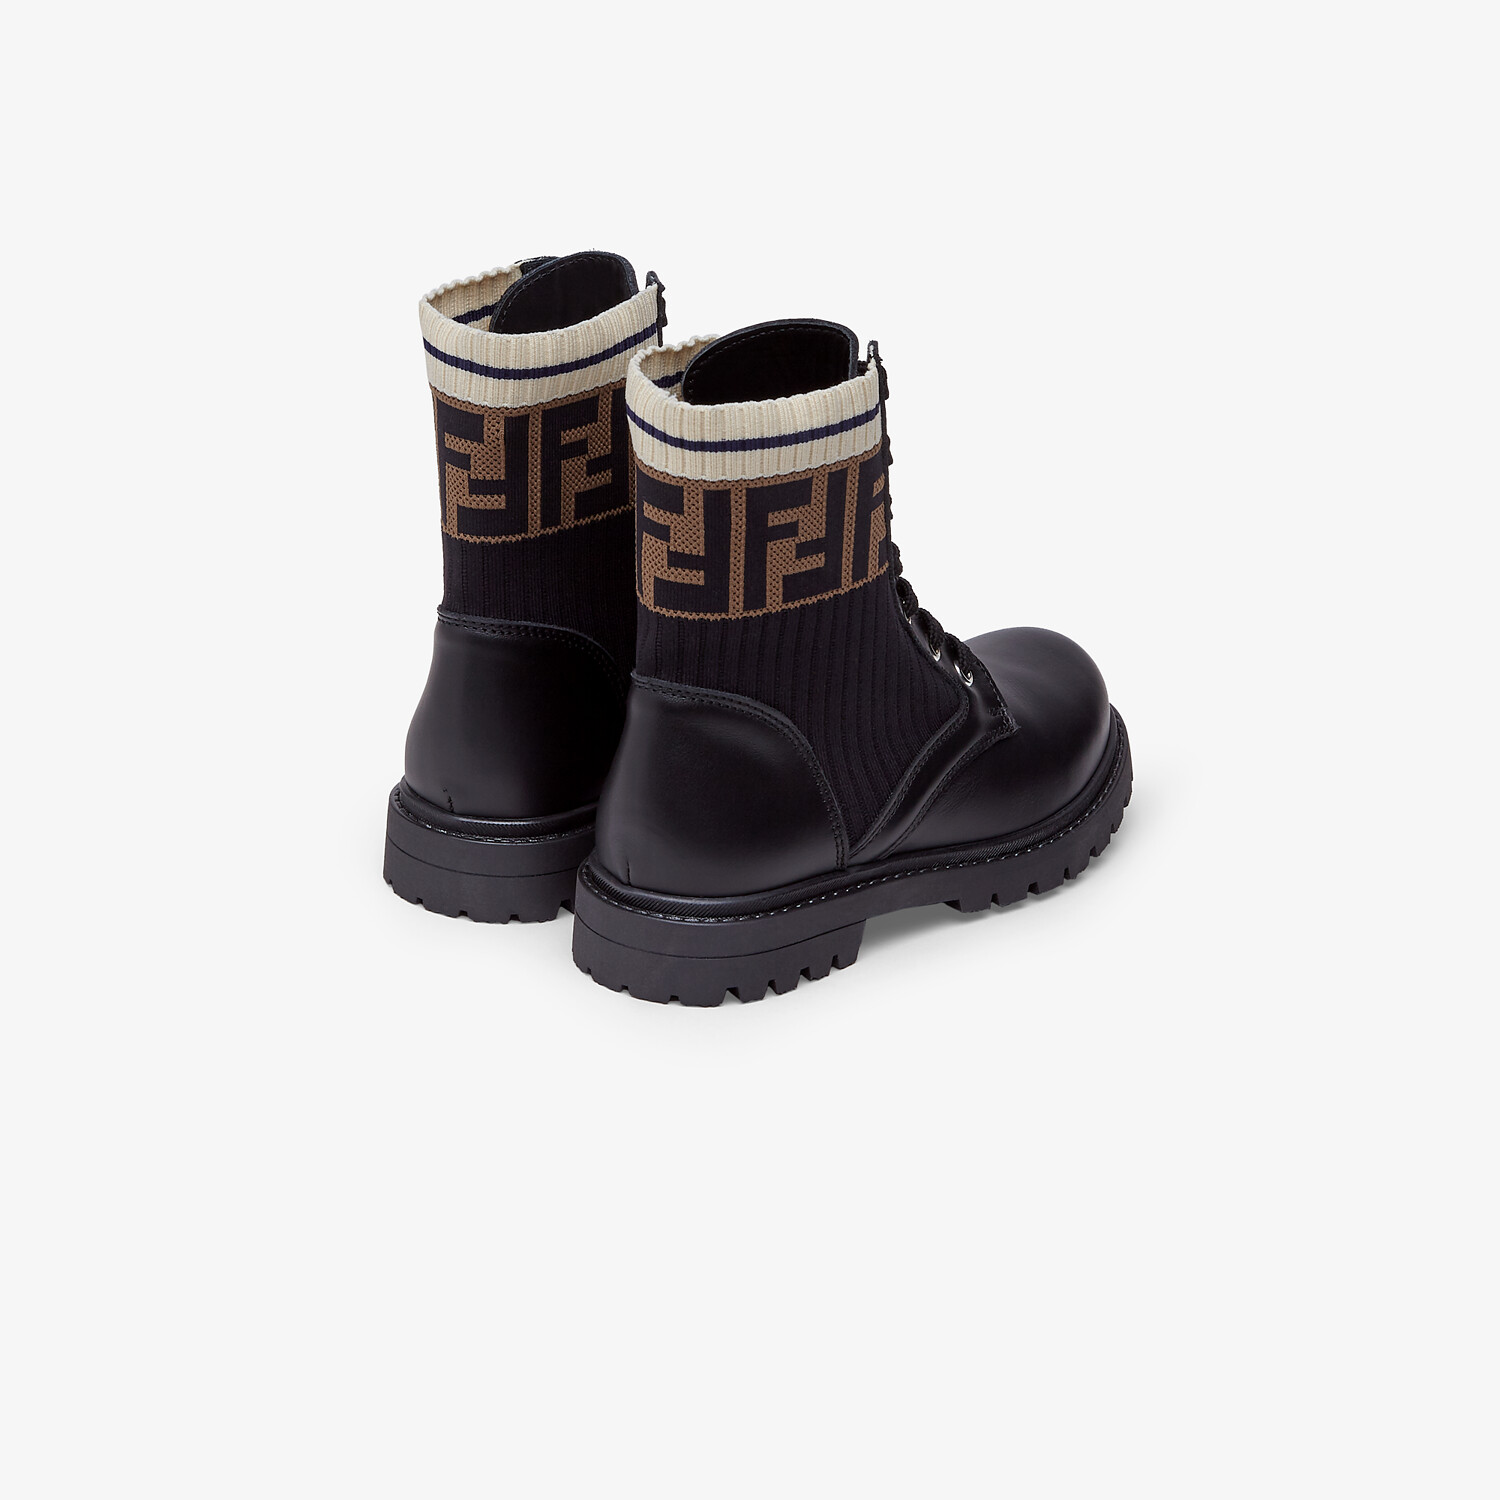 FENDI BIKER BOOTS - Unisex junior biker boots in leather and fabric - view 3 detail